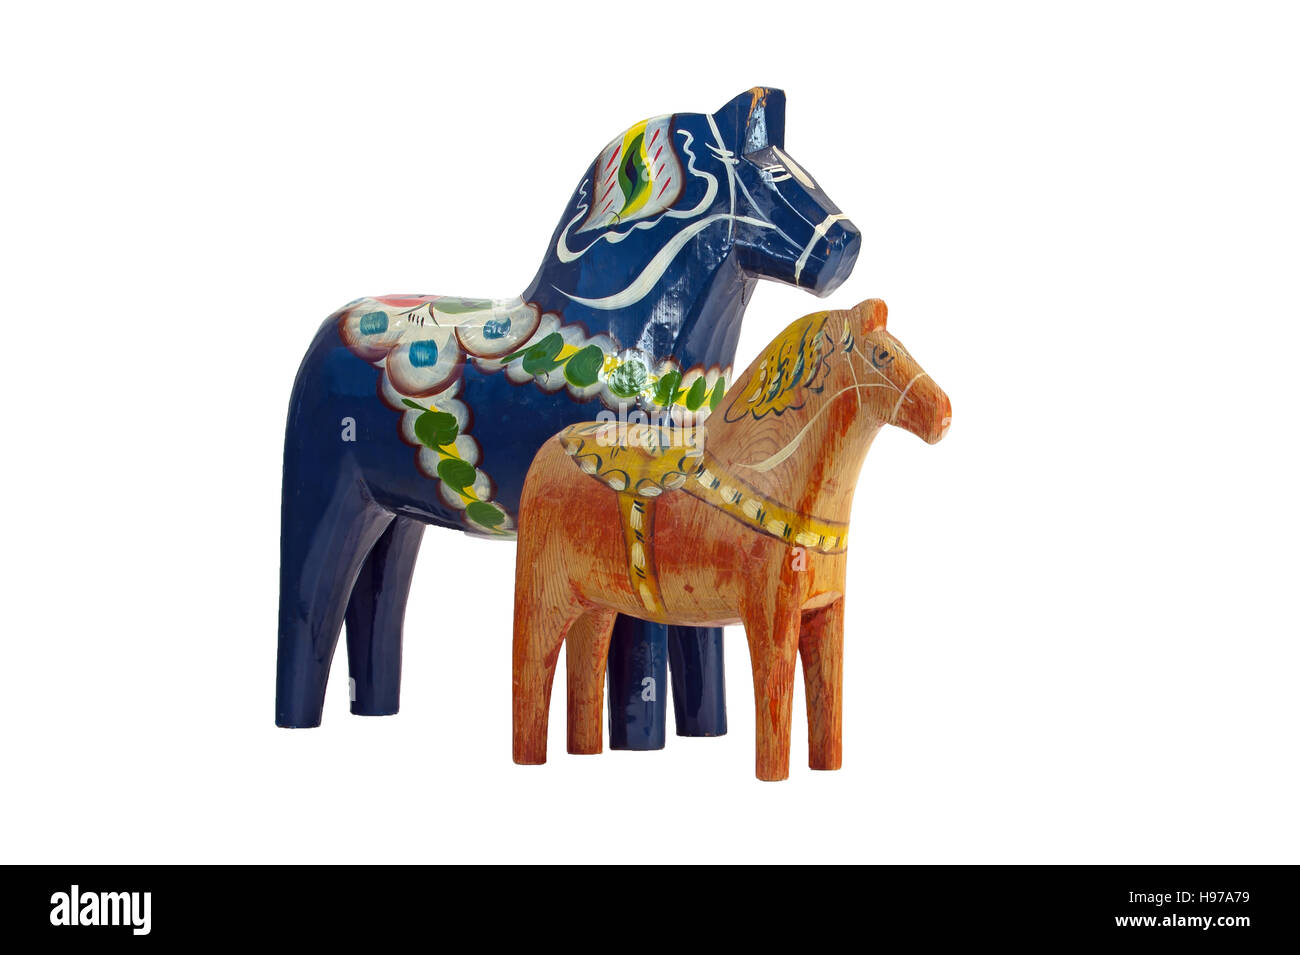 A more modern and blue Dala (Dalecarlian) Horse together with an old red worn Dala Horse, isolated on a white background. Stock Photo